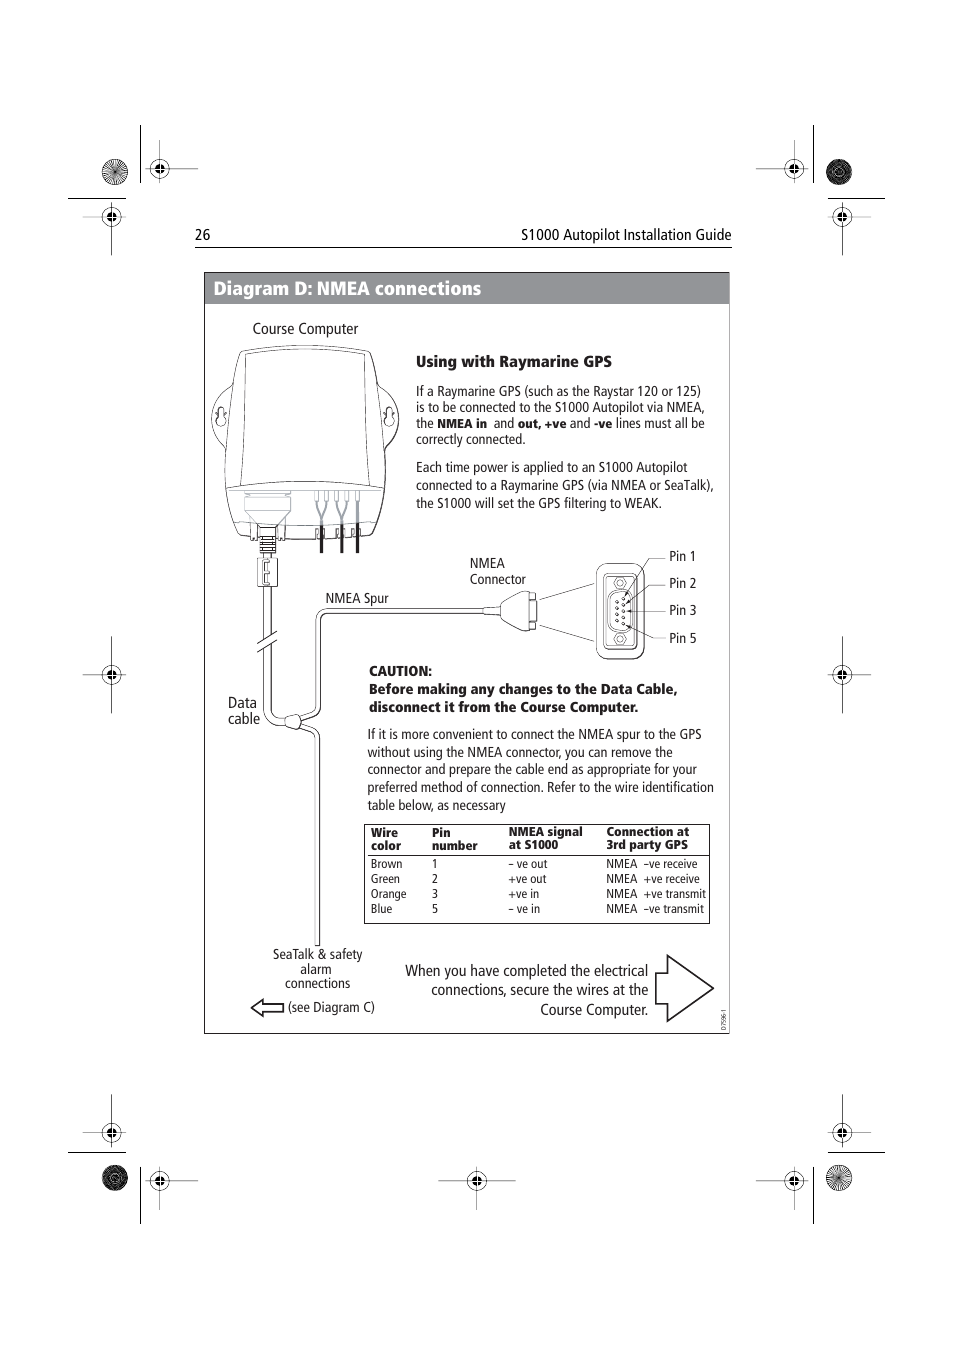 raystar 125 wiring diagram   26 wiring diagram images